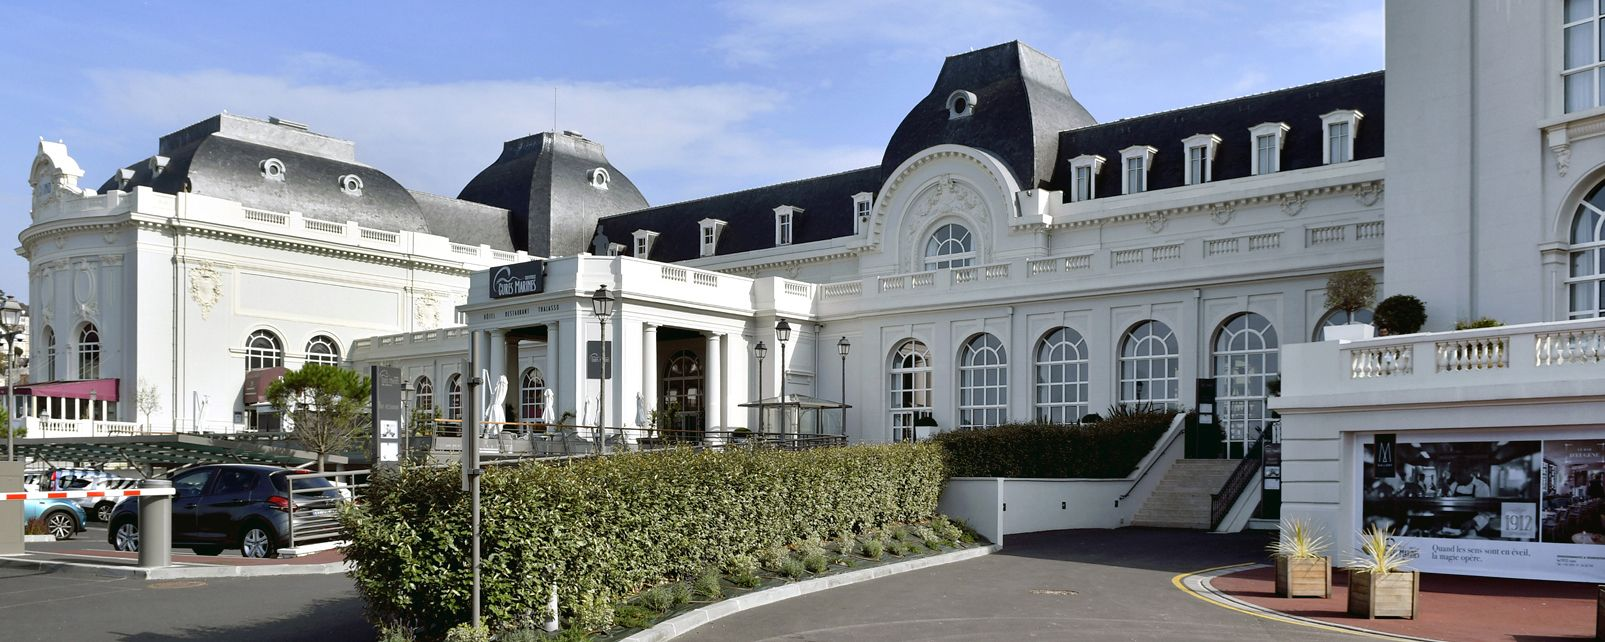 H tel mgallery les cures marines trouville trouville sur mer - Hotel cures marines trouville ...